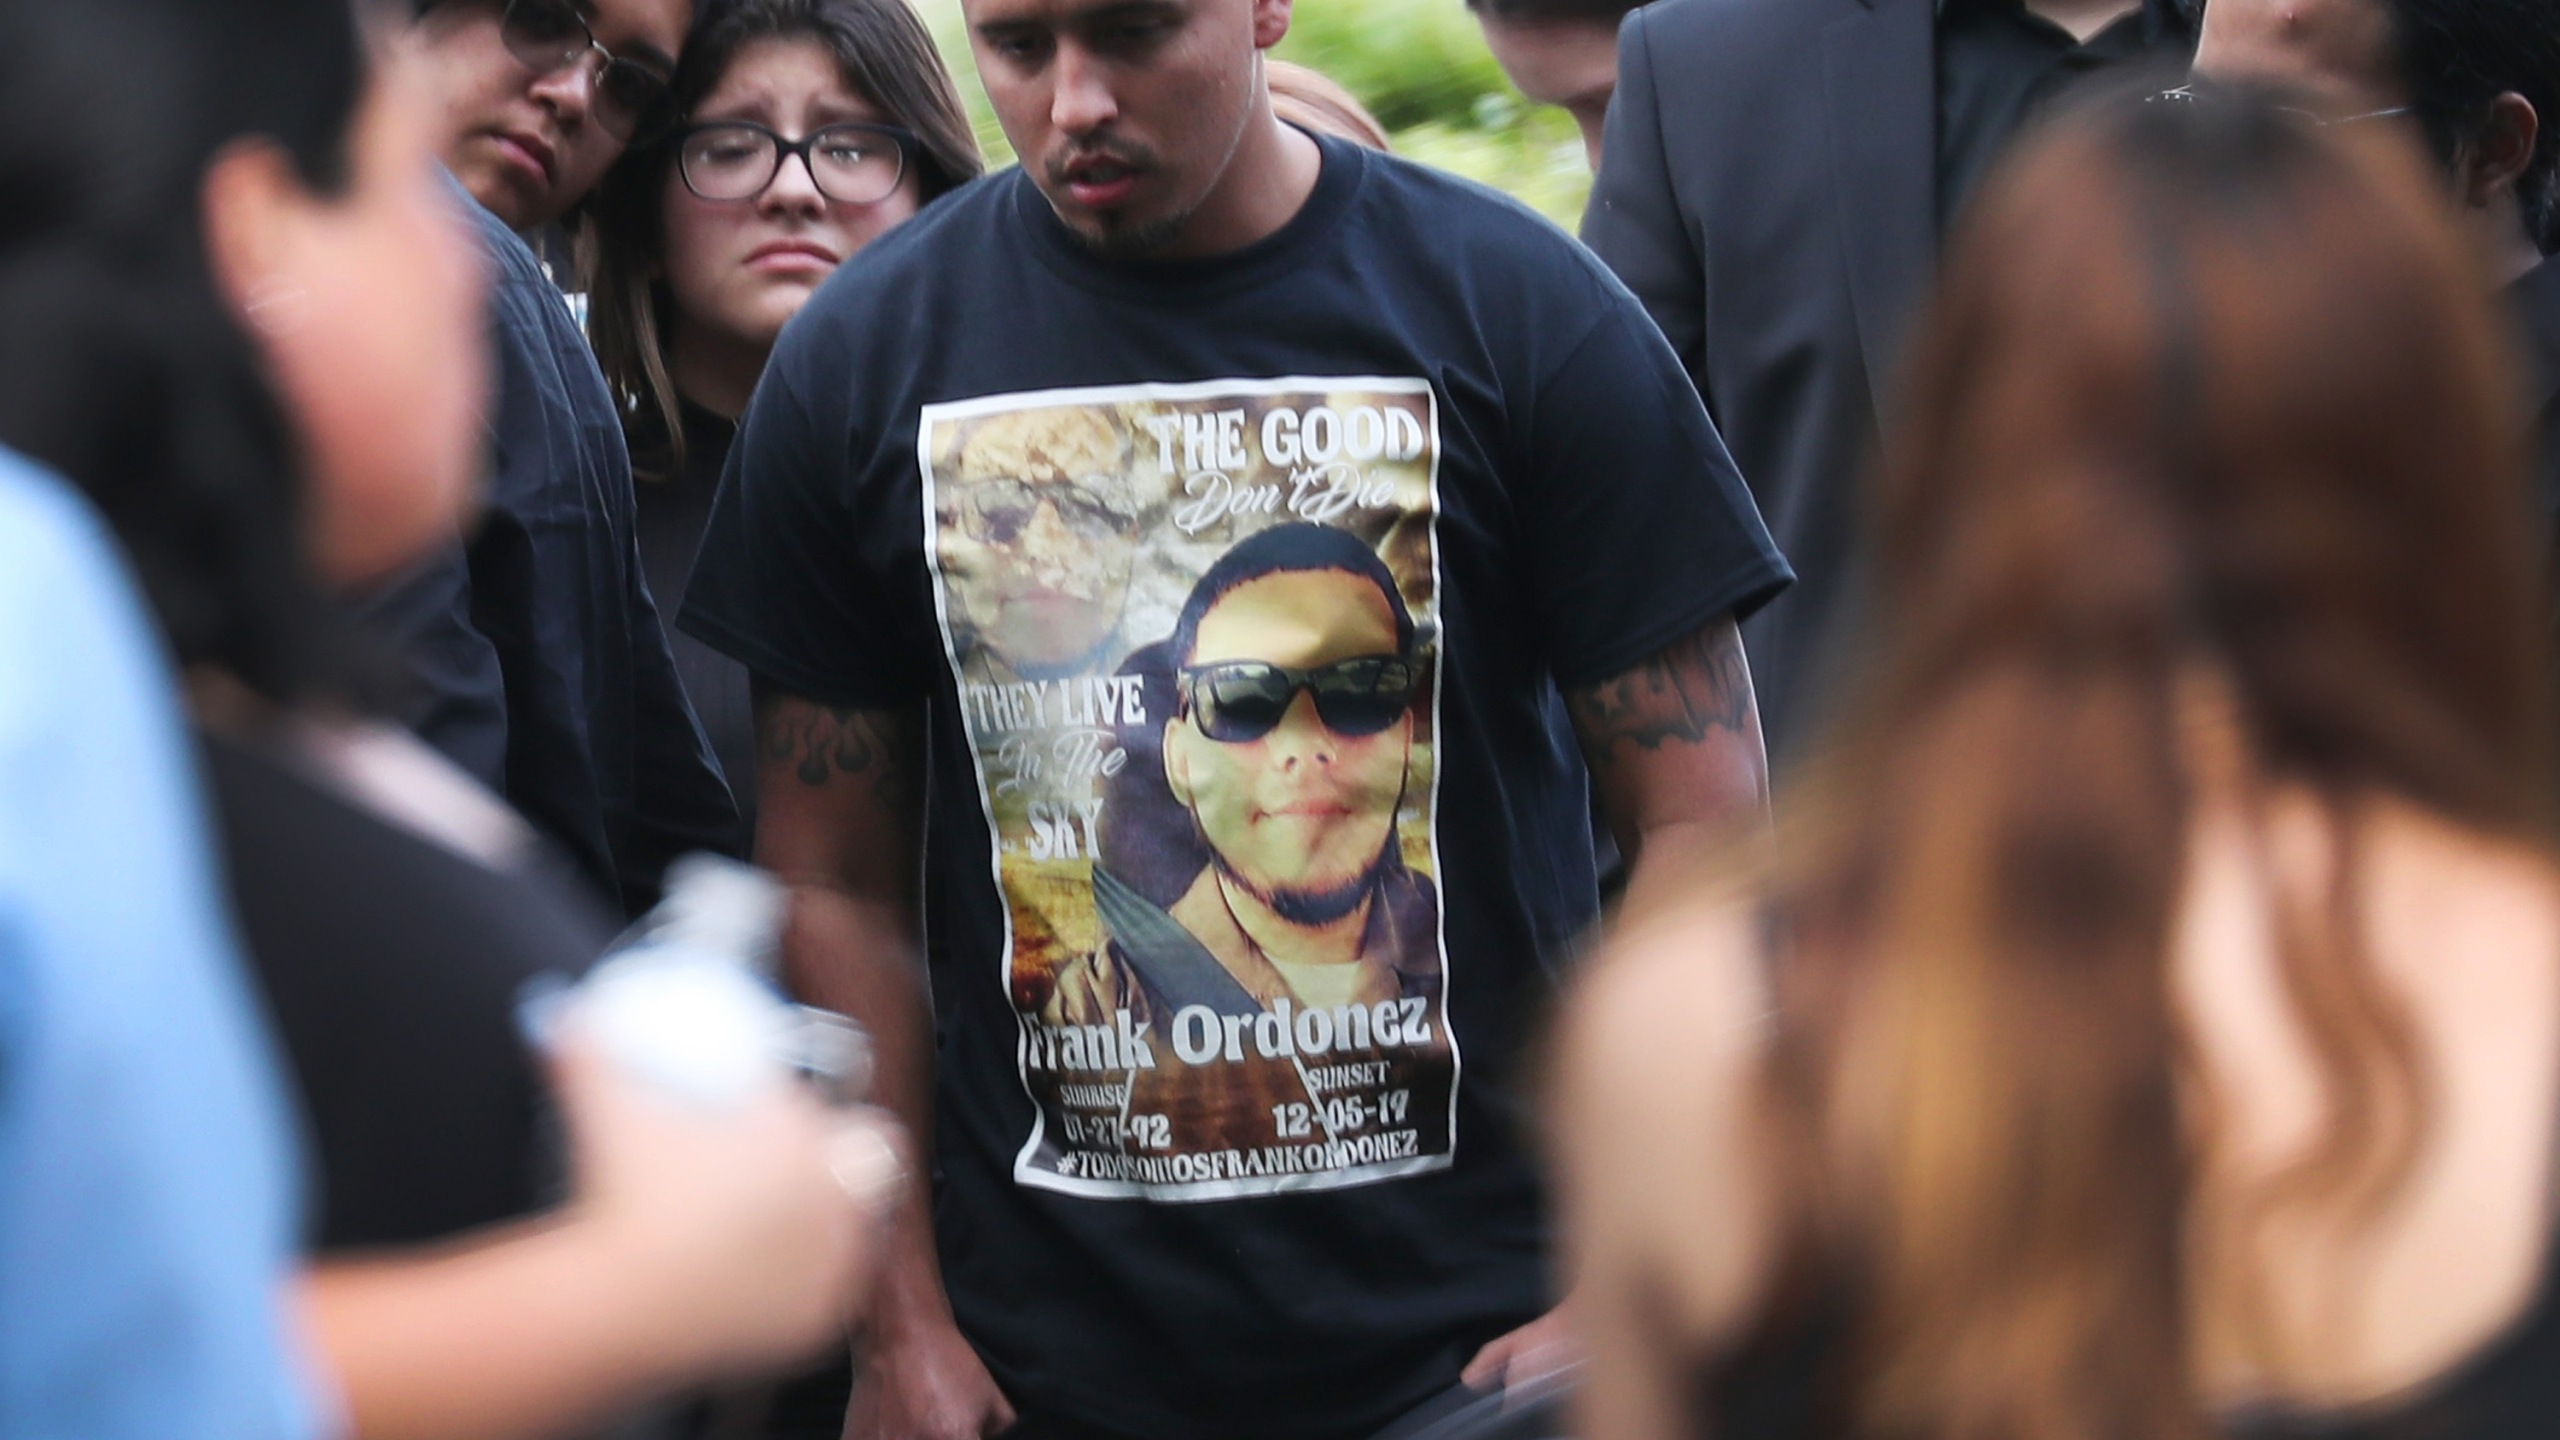 Mourners gather as Frank Ordonez, the UPS driver killed during a shootout between police and two armed robbery suspects, is laid to rest at the Vista Memorial Gardens cemetery on December 10, 2019 in Miami Lakes, Florida. (Credit: Joe Raedle/Getty Images)